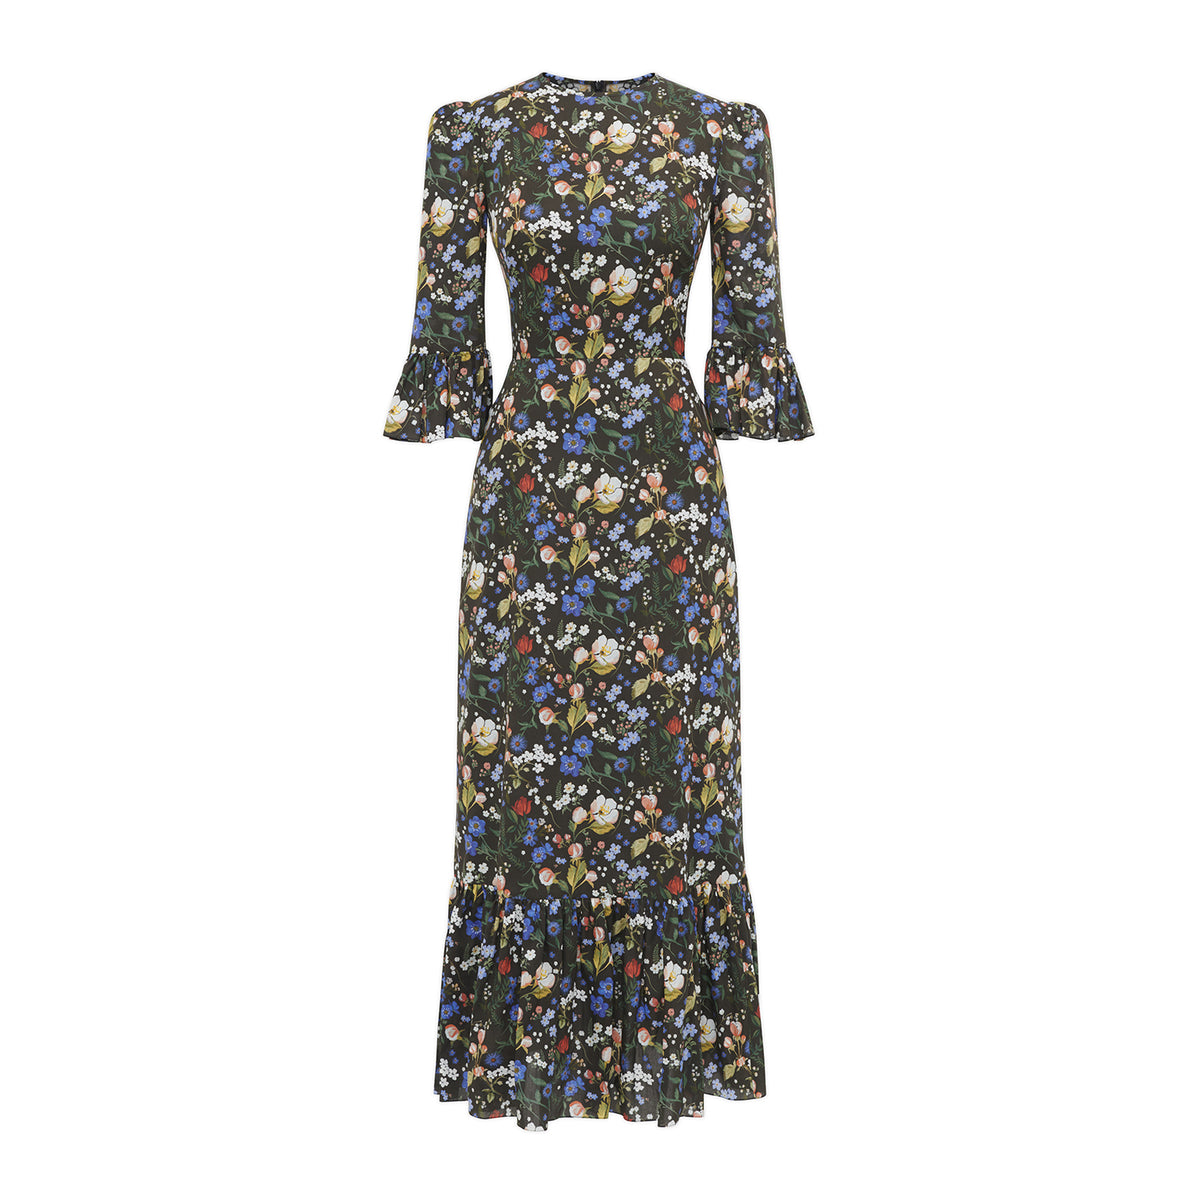 THE FORGET ME NOT FESTIVAL DRESS